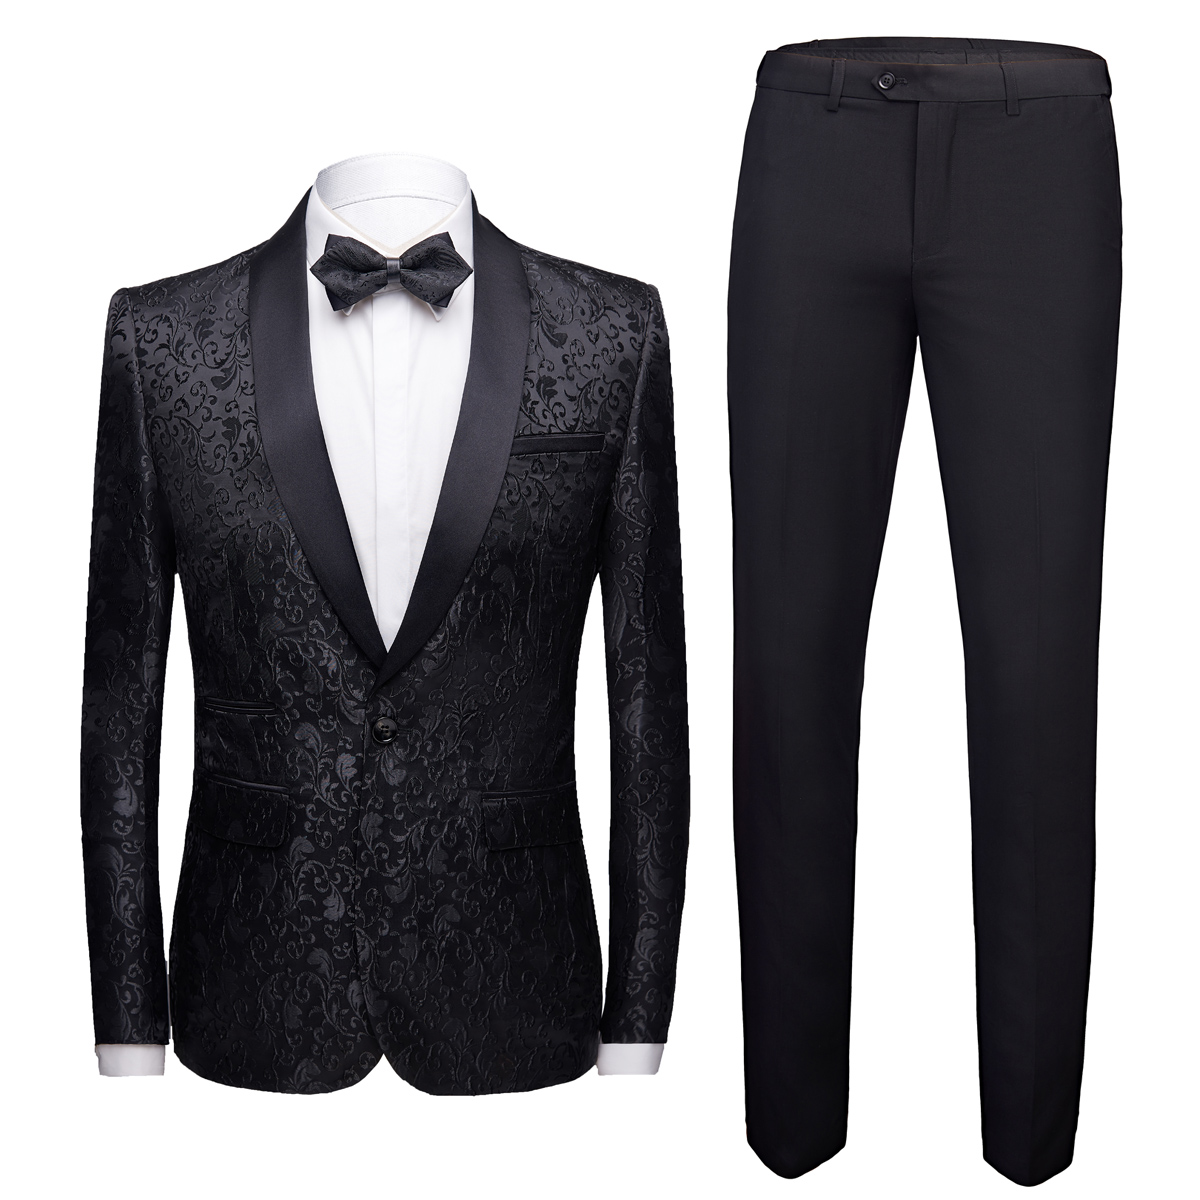 2020 New Mens Suit 2 Piece Set Slim Design Suit Blazer Jacket + Pants  Wedding Banquet Tuxedo Suit Autumn Terno Masculino